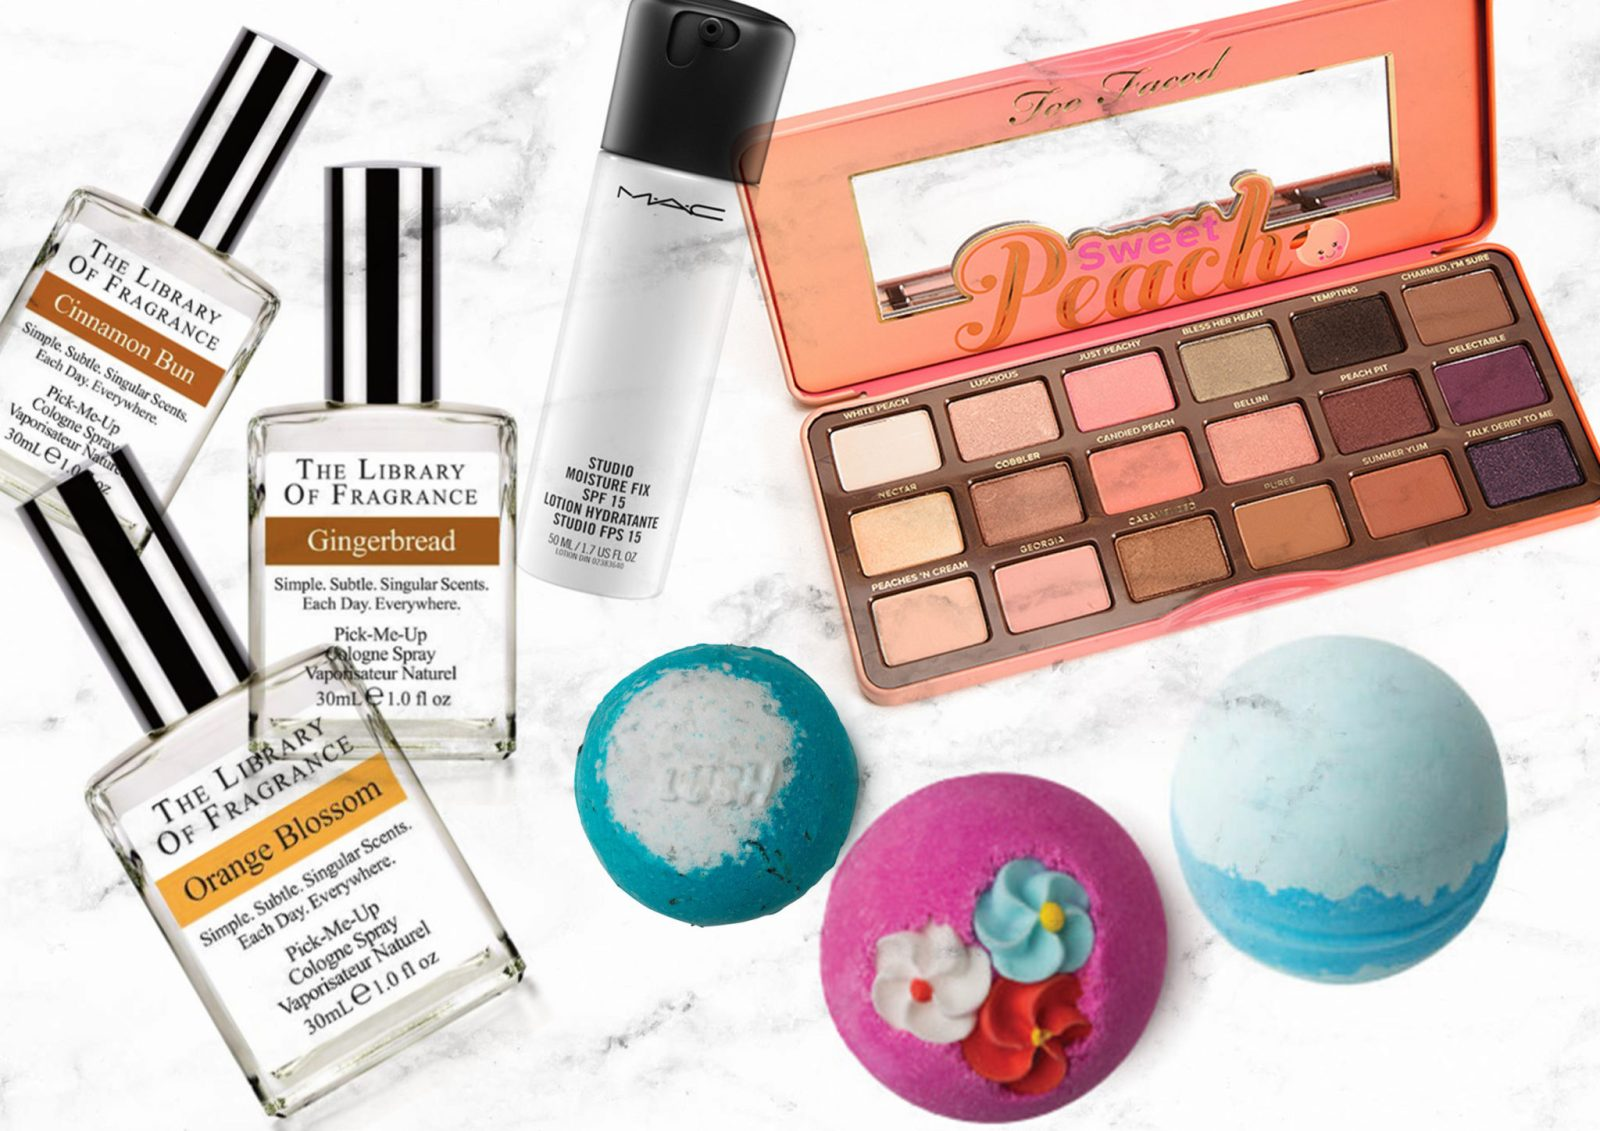 Beauty Wishlist Library Of Fragrance Too Faced Peach Pallette Mac Fix Plus Lush